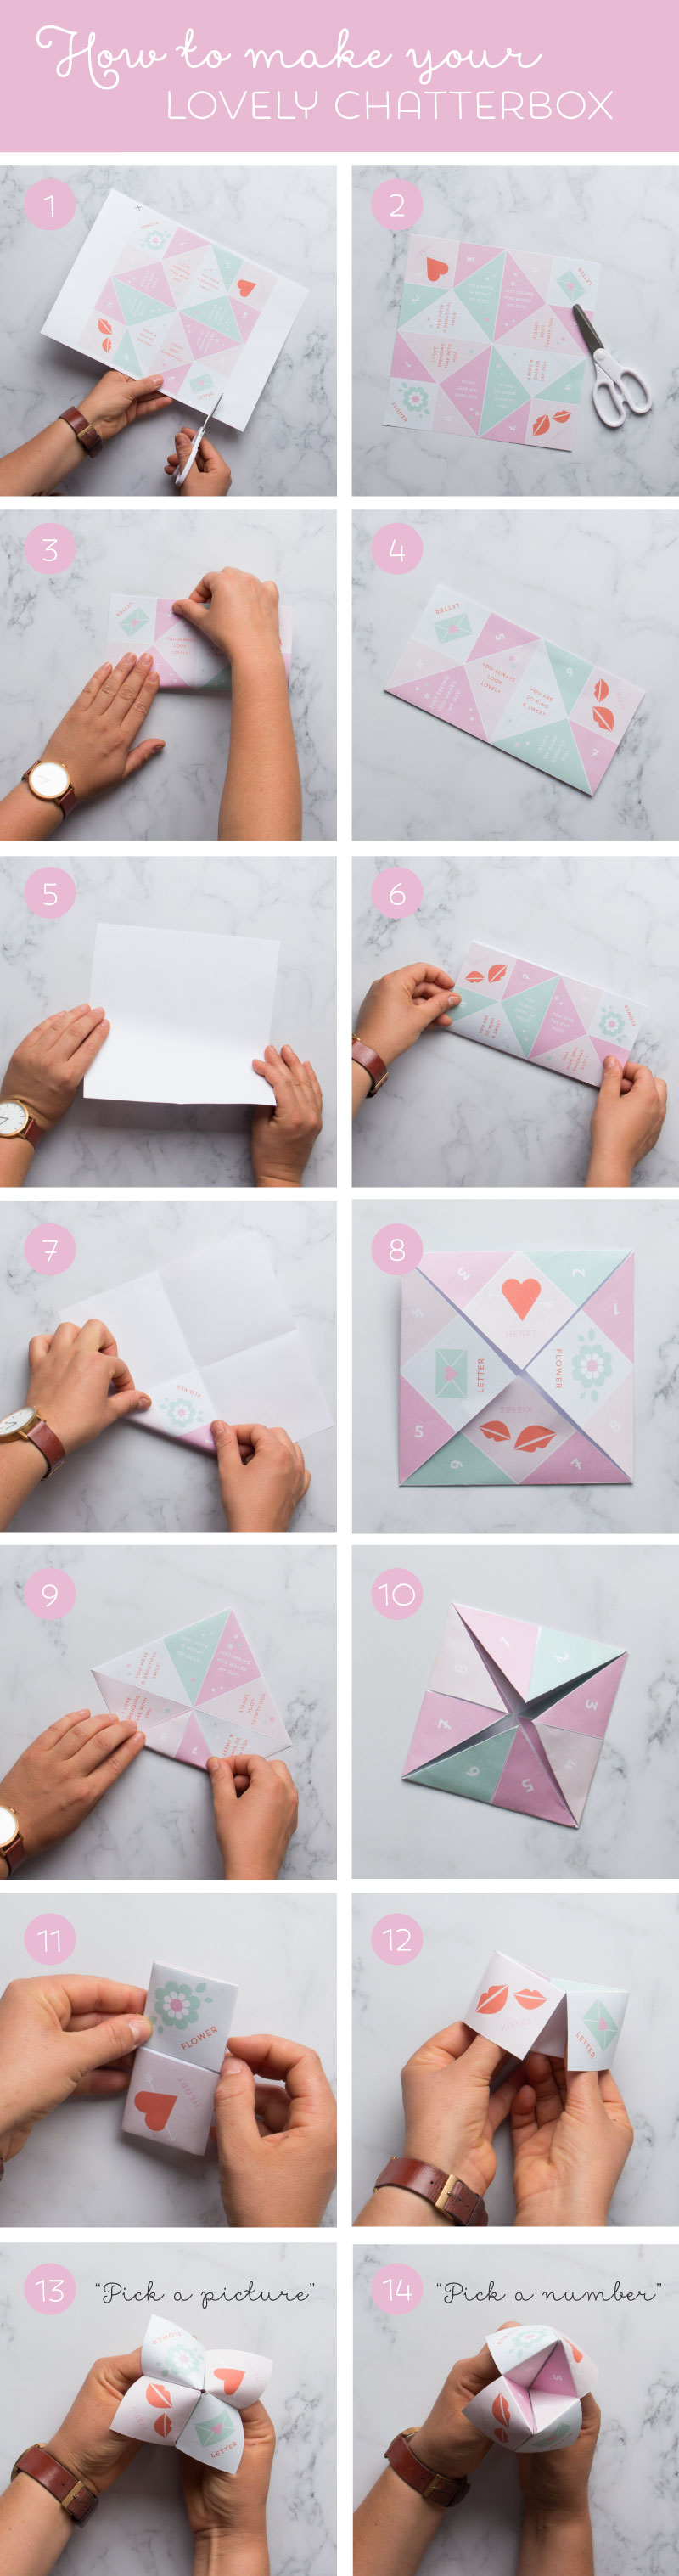 How to make a chatterbox or paper fortune teller with free Valentines themed printable chatterbox